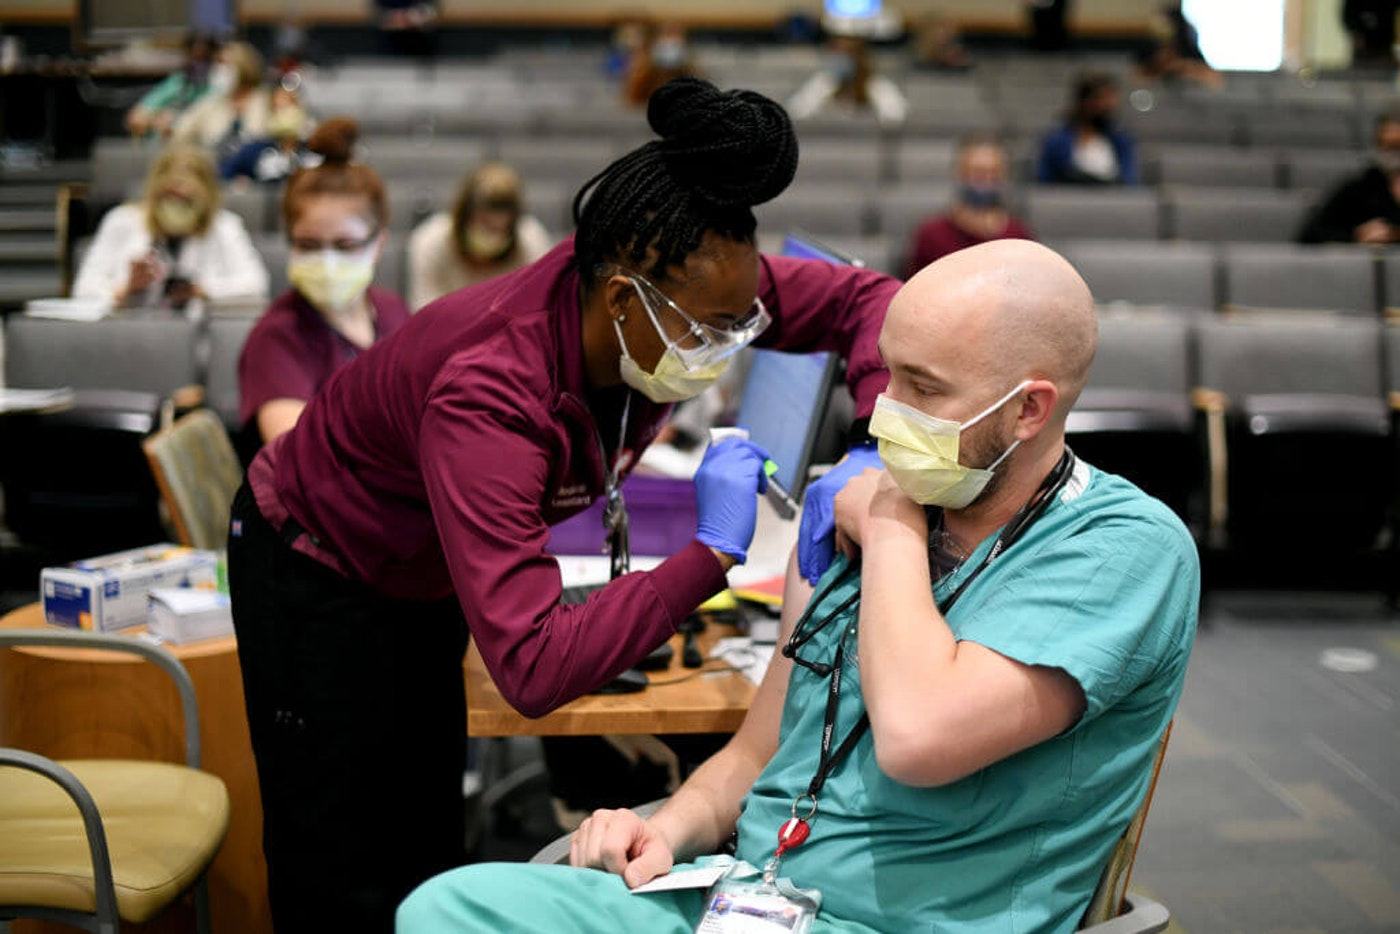 Medical assistant Shalice Wheeler, left, administers COVID-19 vaccine to physician assistant Matt Ferraro at UCHealth University of Colorado Hospital in Aurora, Colorado, on Thursday. Dec. 17, 2020. (The Denver Post Photo via Getty Images/Hyoung Chang)